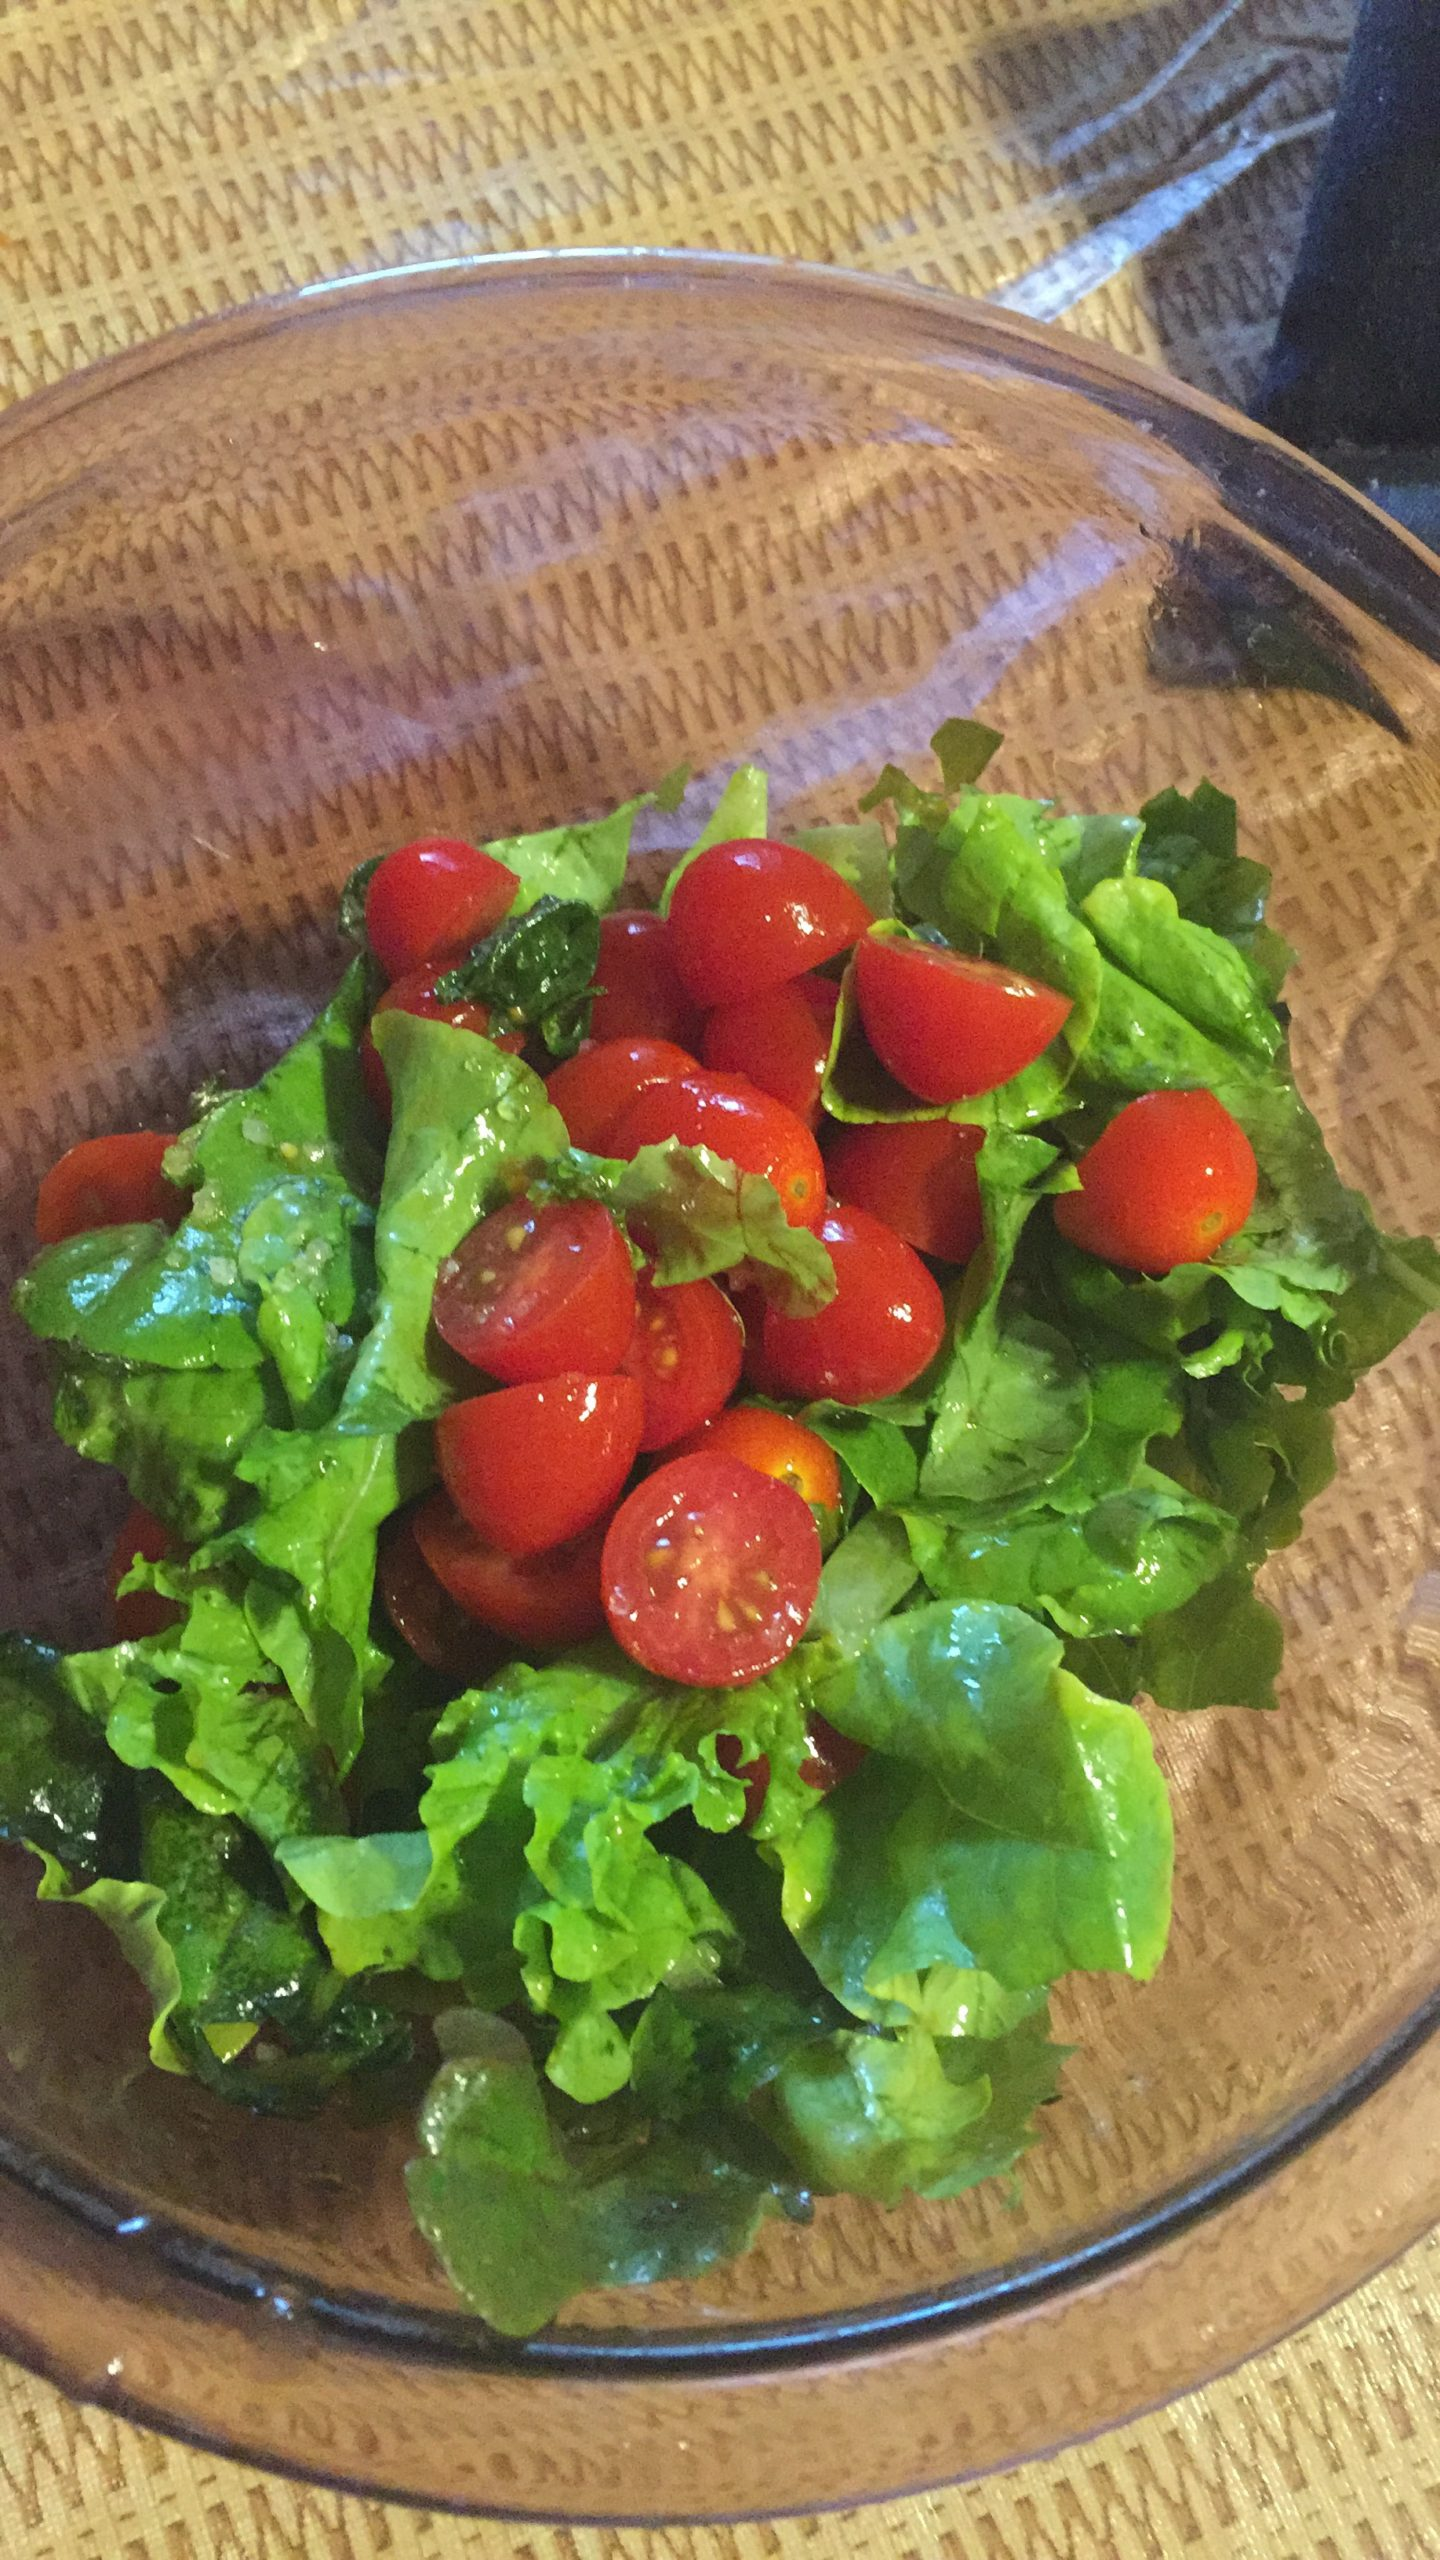 Cut garde lettuce with grape tomatoes